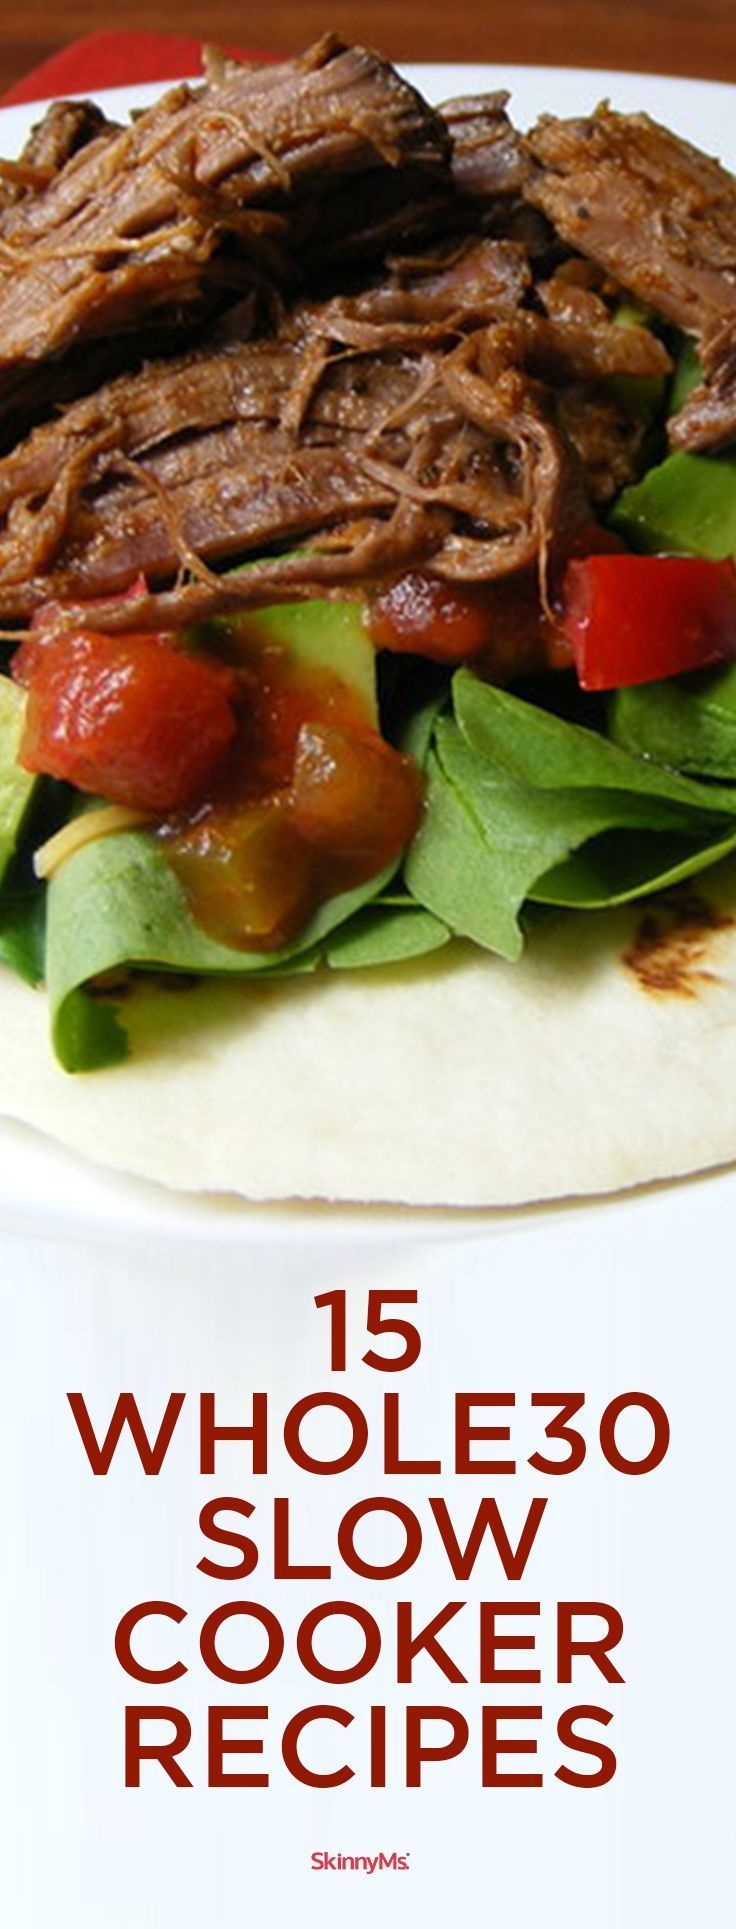 15 Whole30 Slow Cooker Recipes - Get cooking!